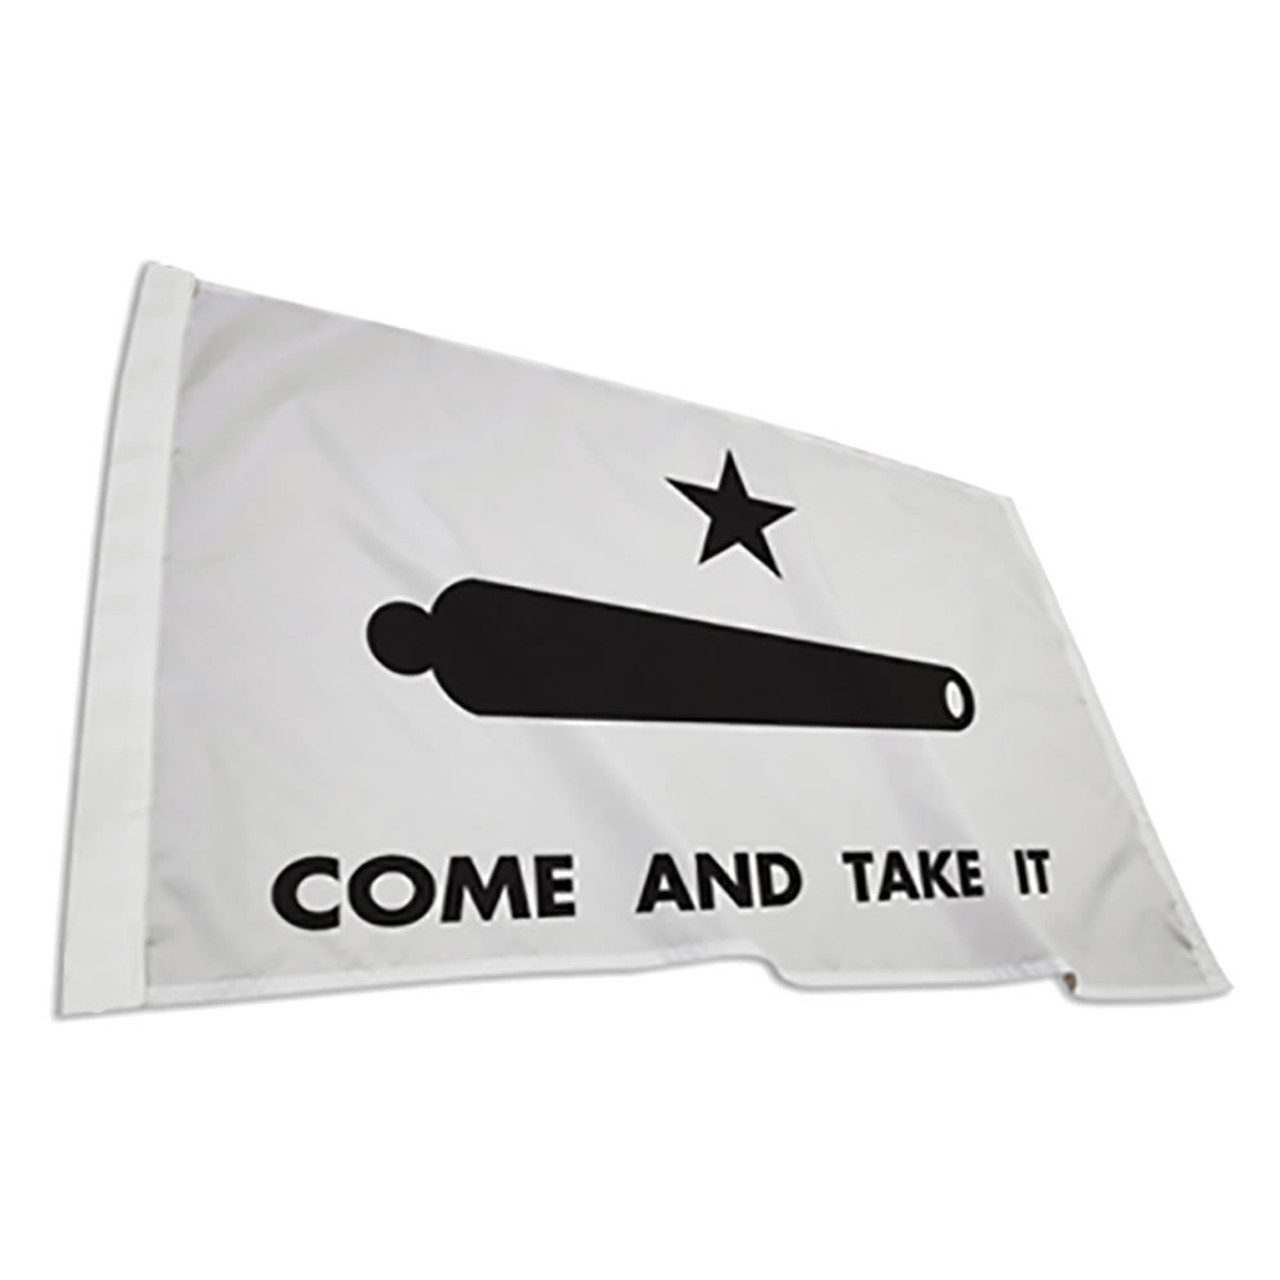 Gonzales Banner of 1835 Flags - Come and take it flag